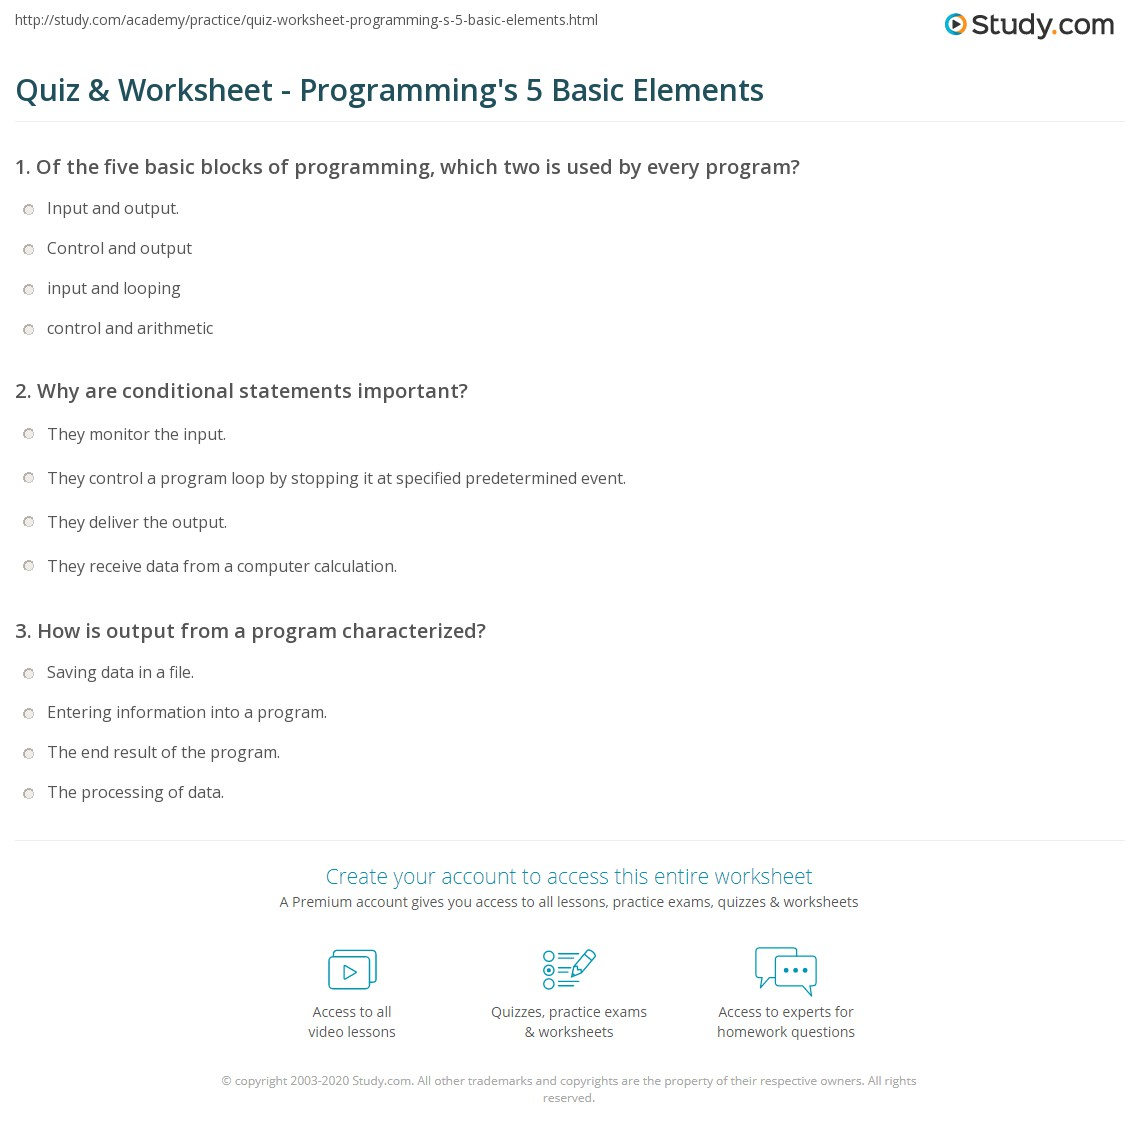 Print 5 Basic Elements Of Programming Worksheet Quiz & Worksheet  Programming's 5 Basic Elements Study